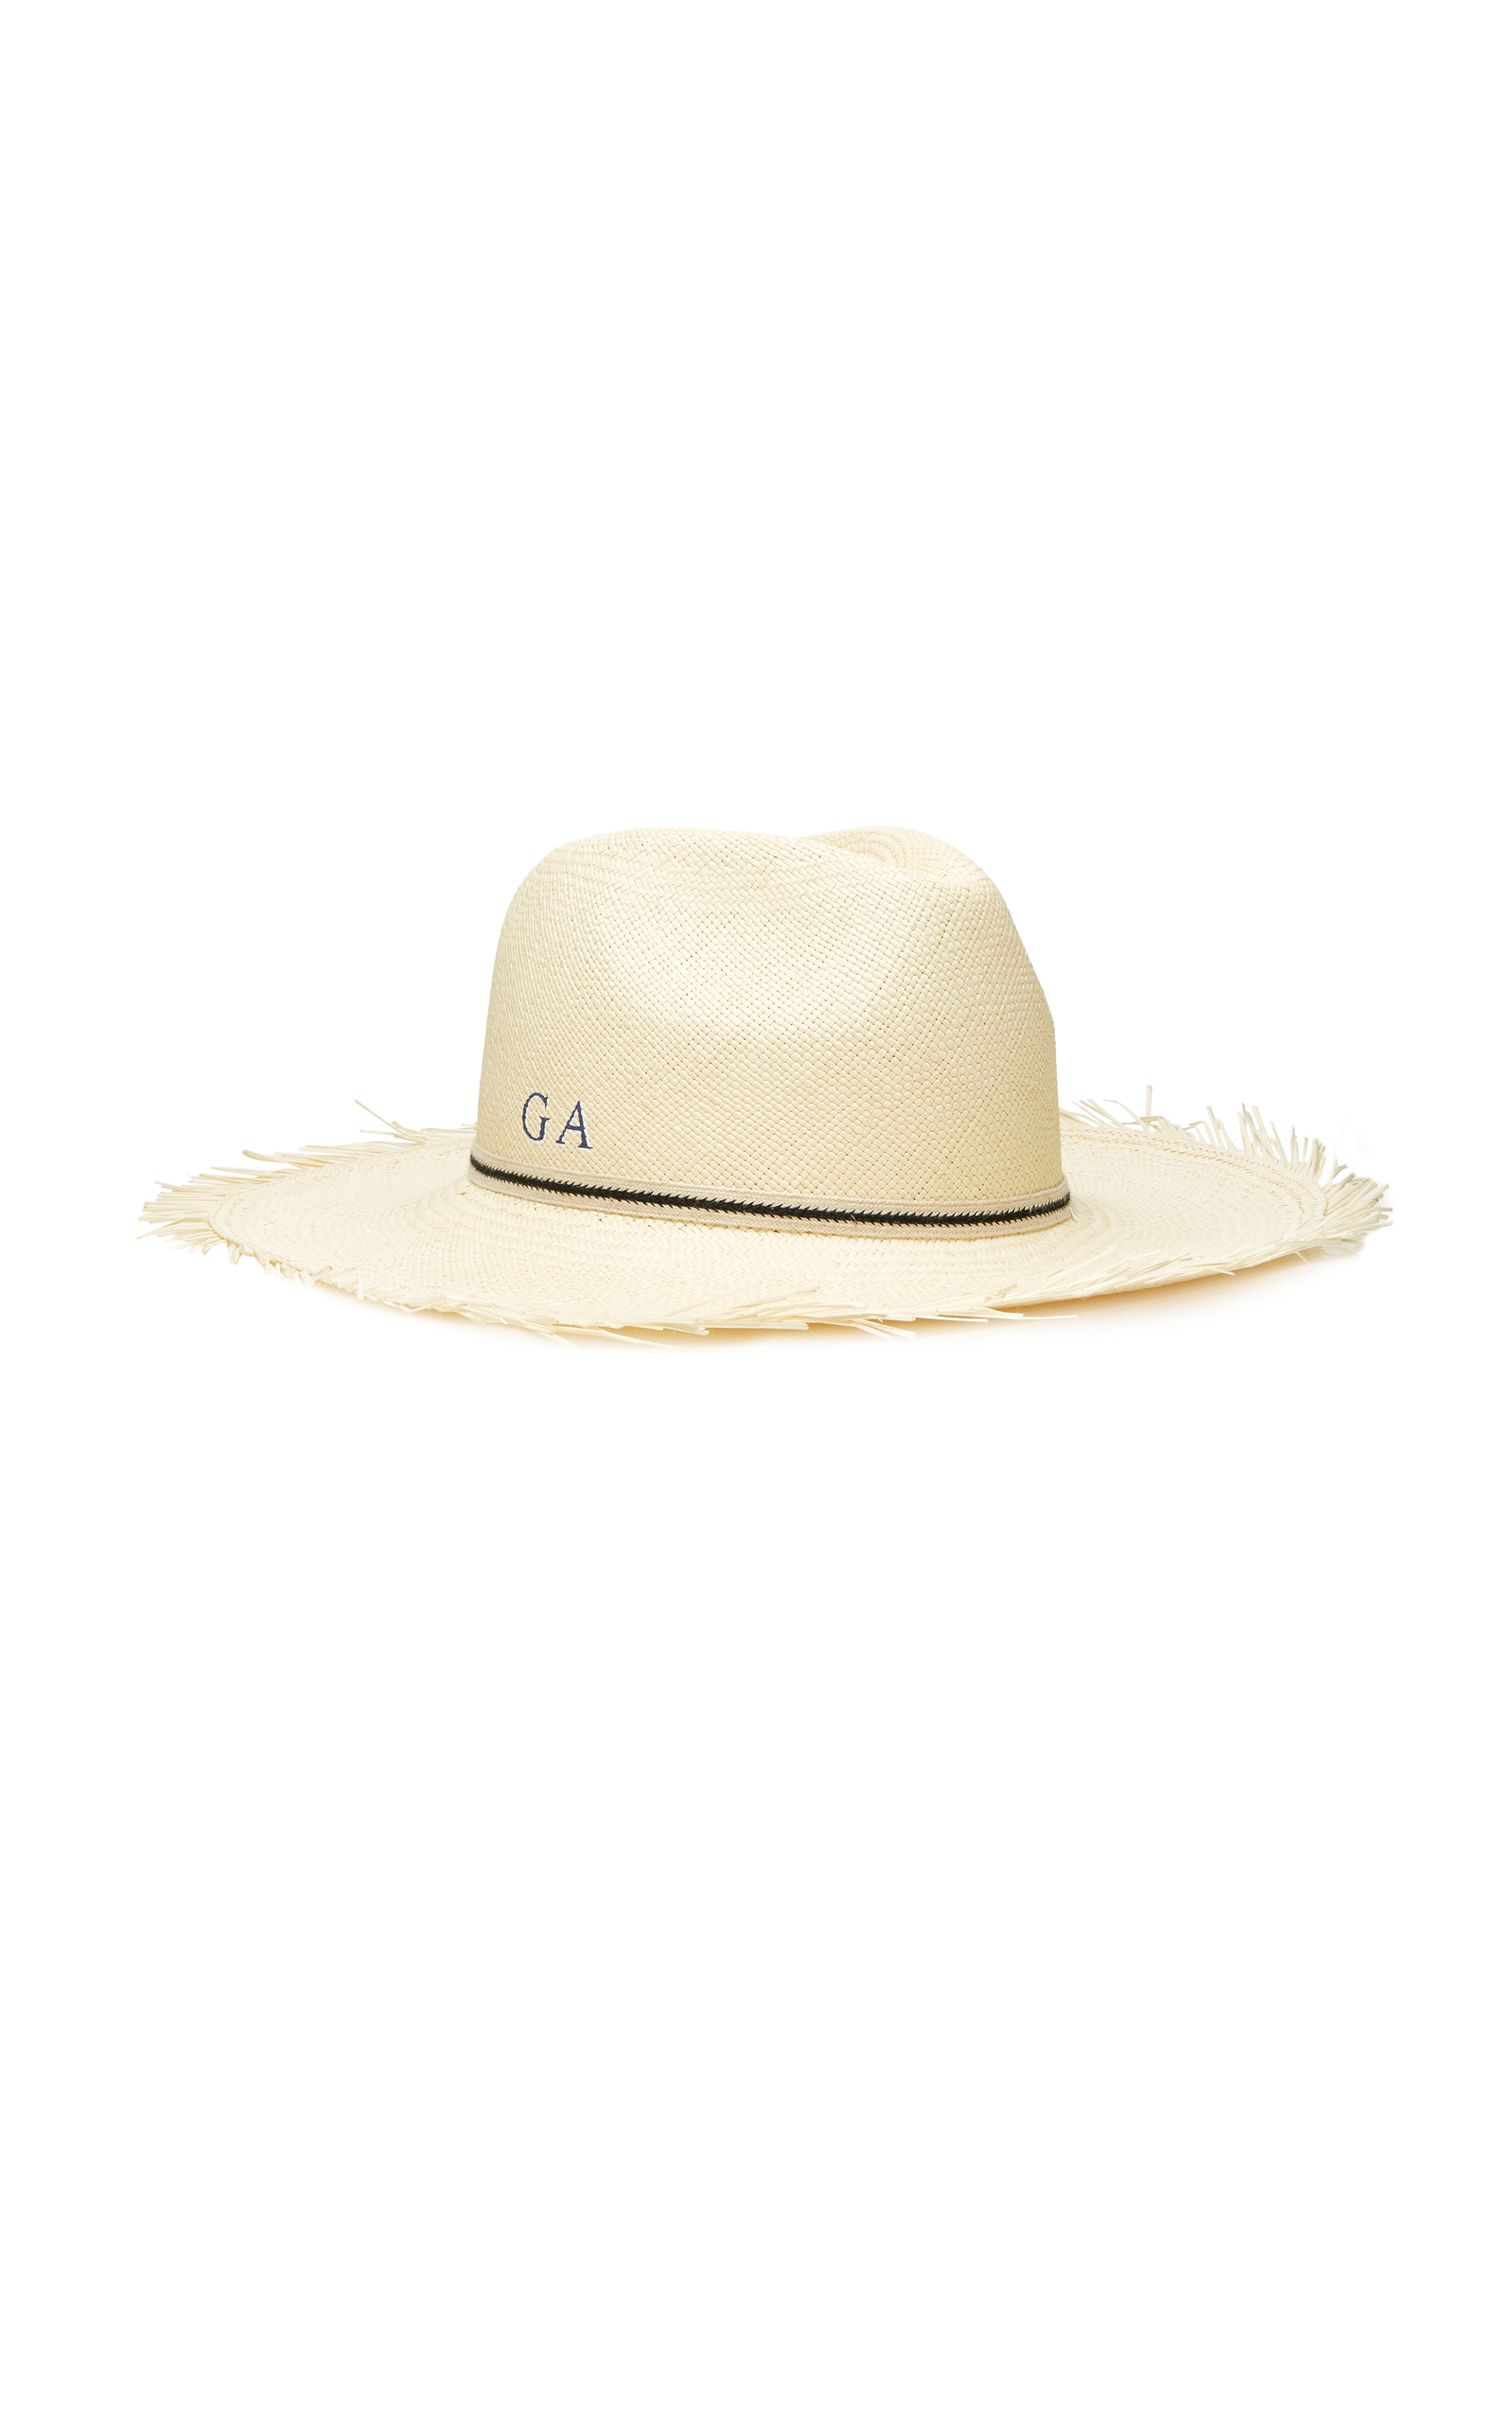 M'O Exclusive Monogrammable Frayed Edge Panama Hat